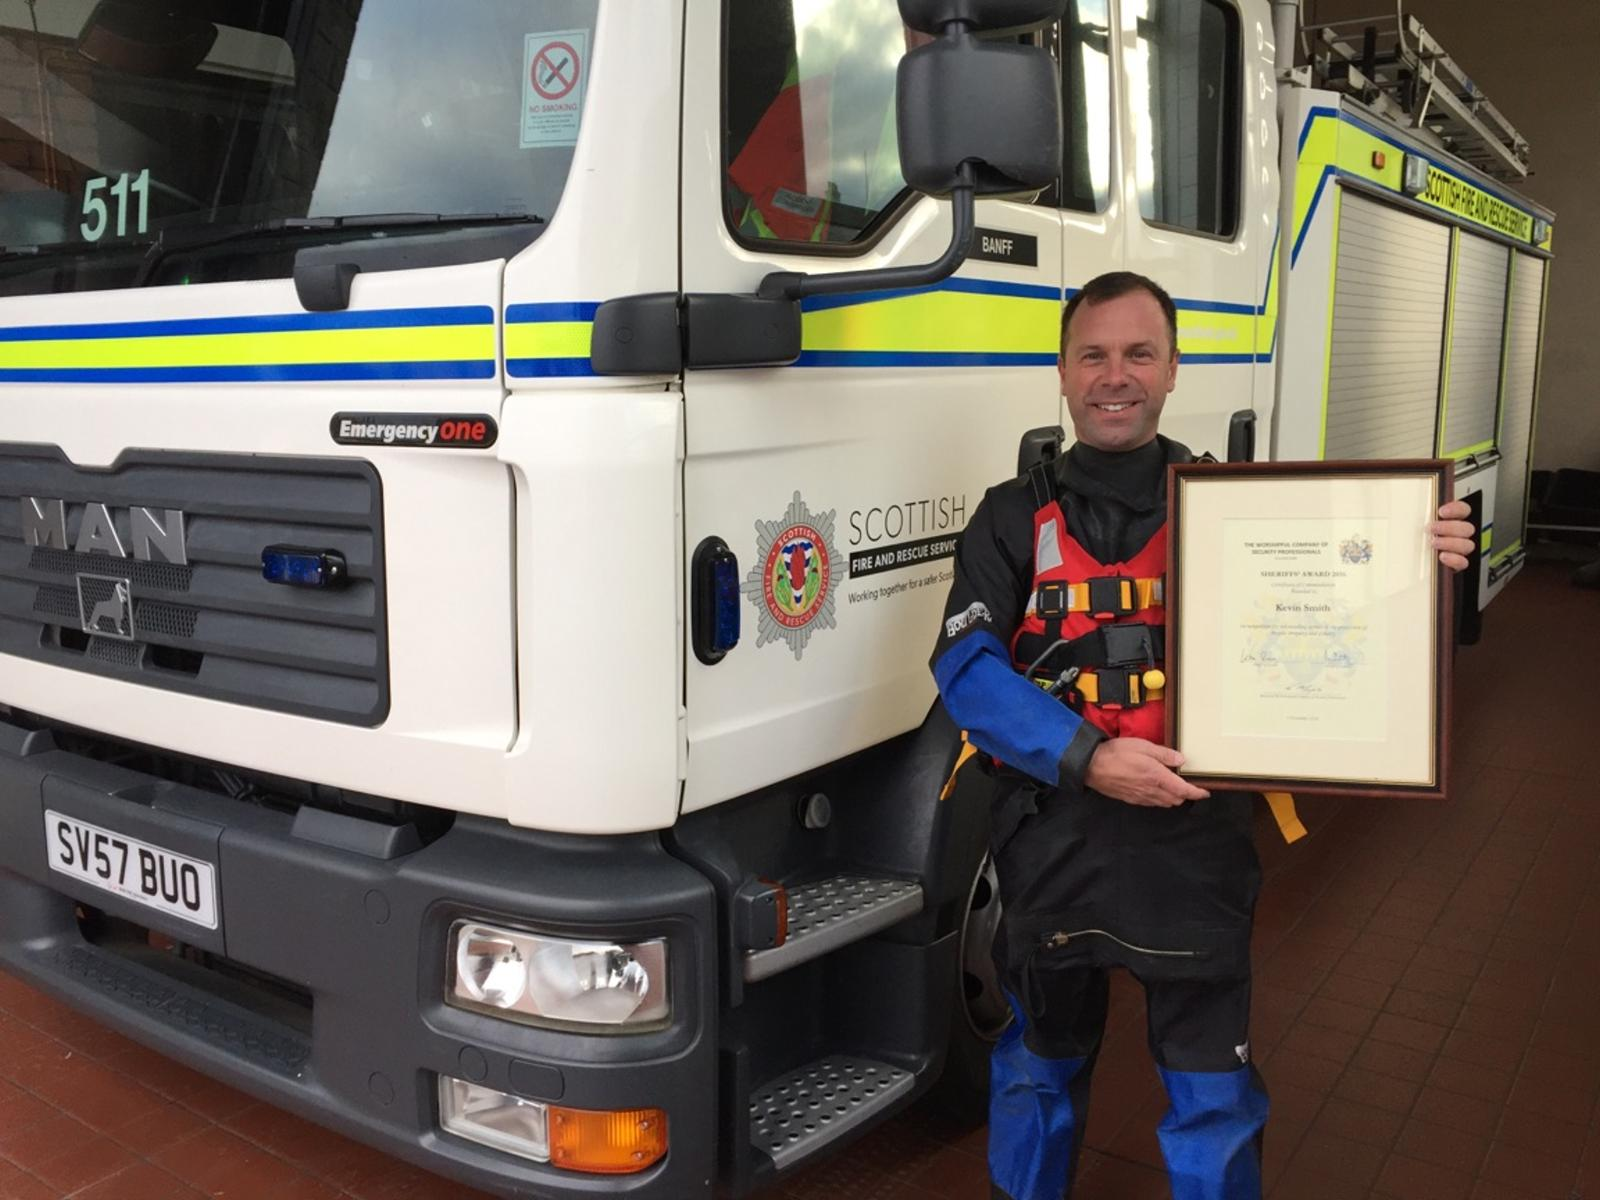 Firefighter given bravery award for saving woman from sinking car